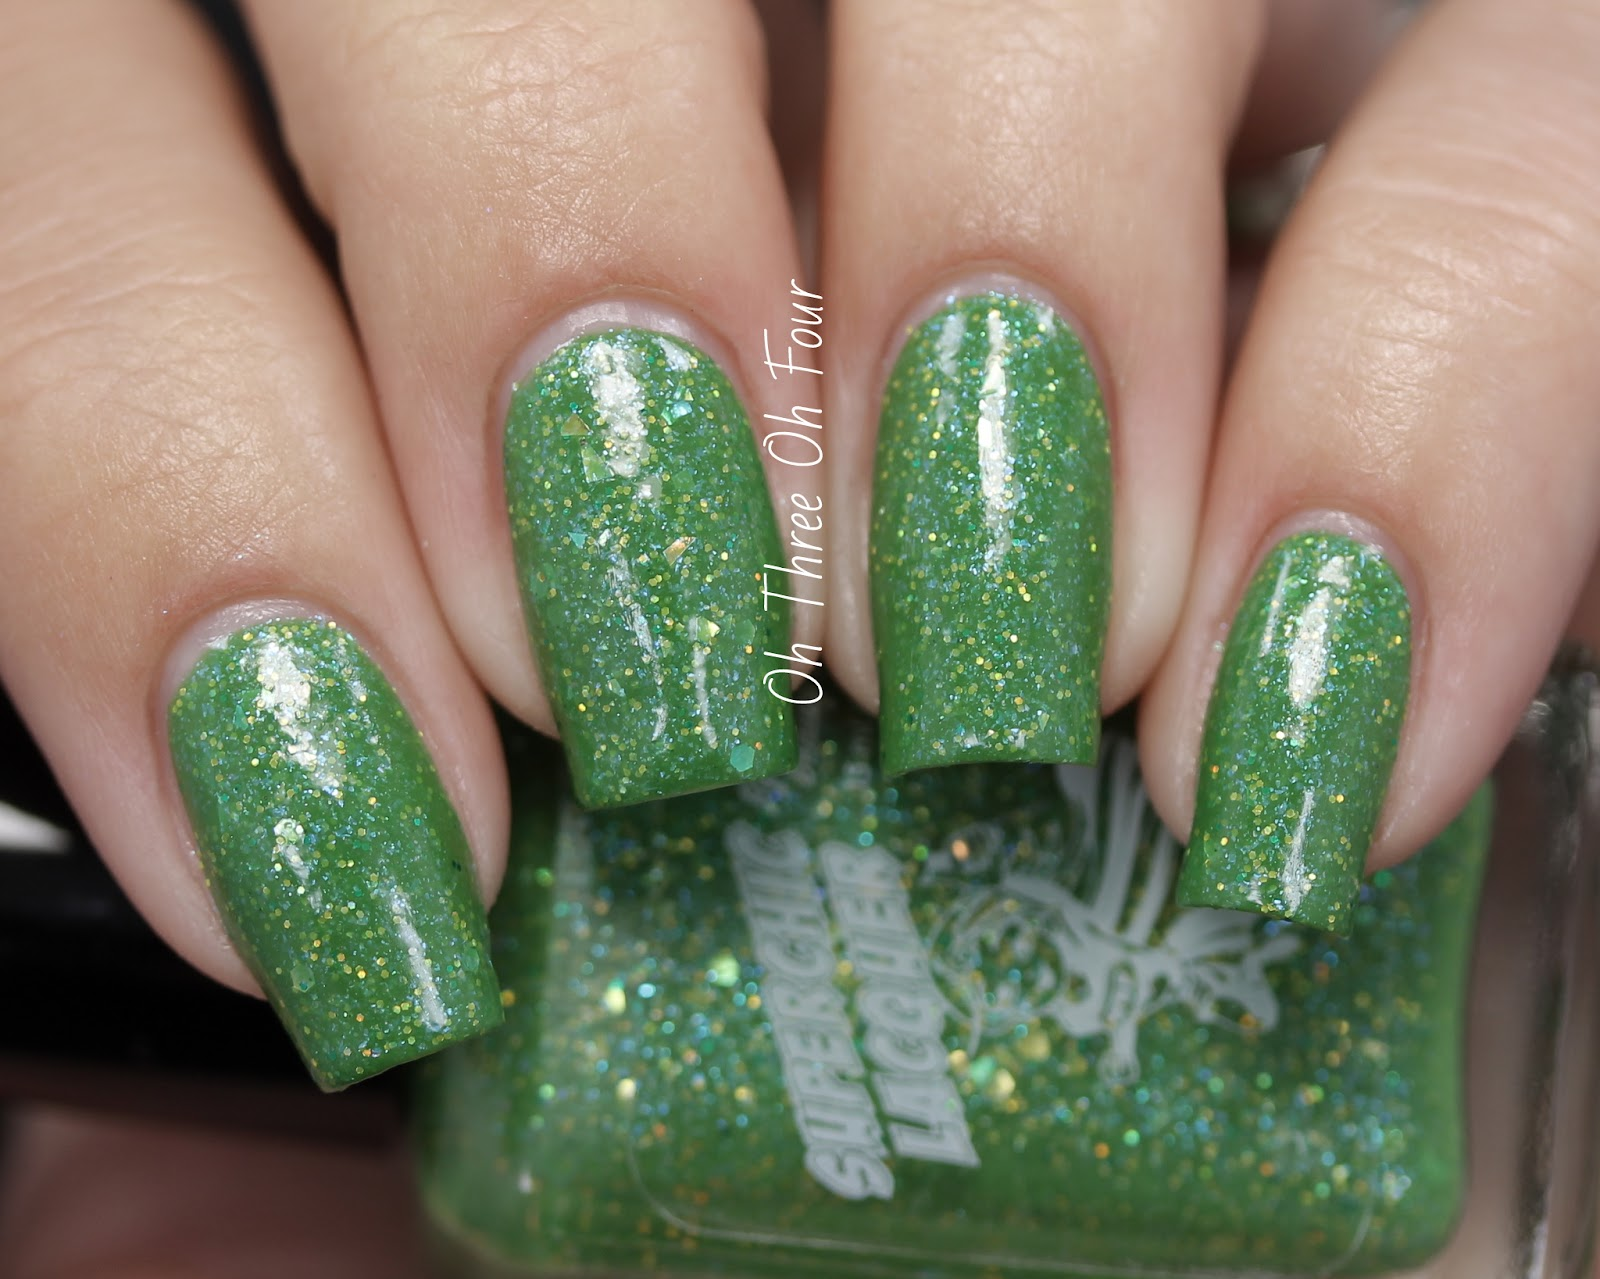 SuperChic Lacquer Never Grow Up Swatch